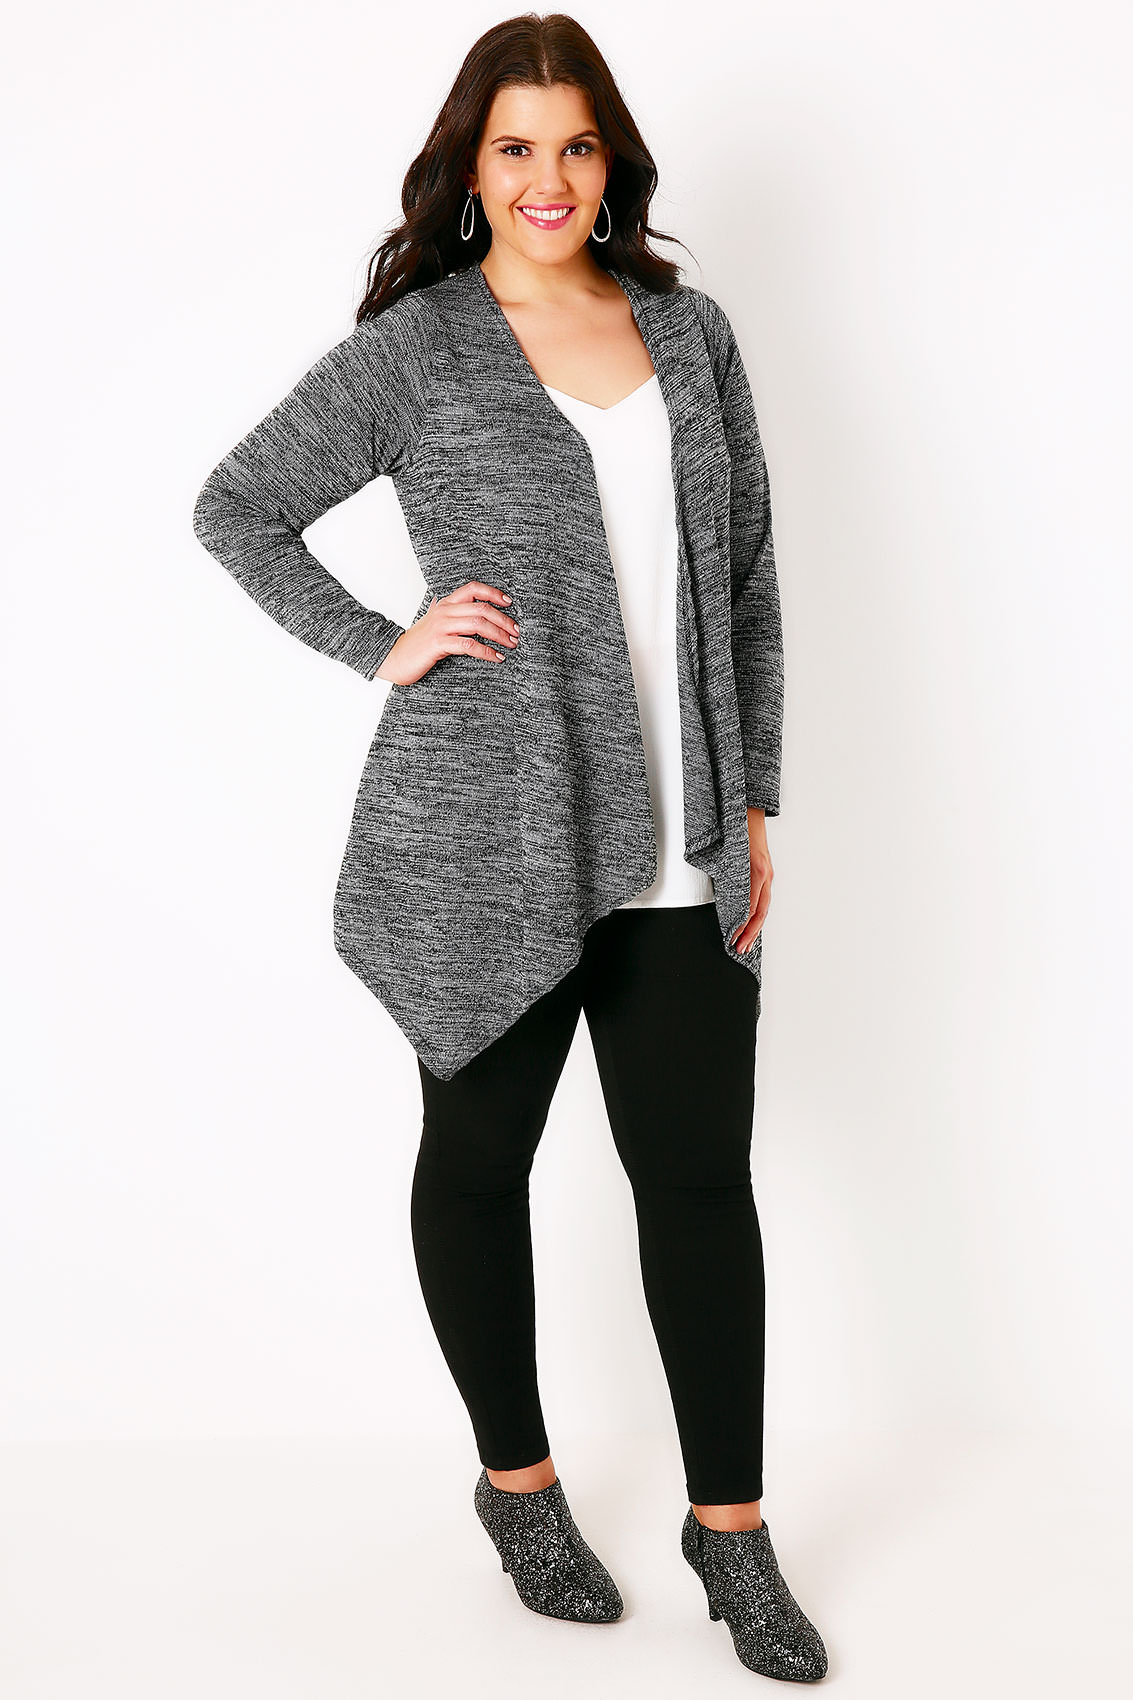 Grey Sparkle Cardigan With Waterfall Front, Plus size 16 to 36